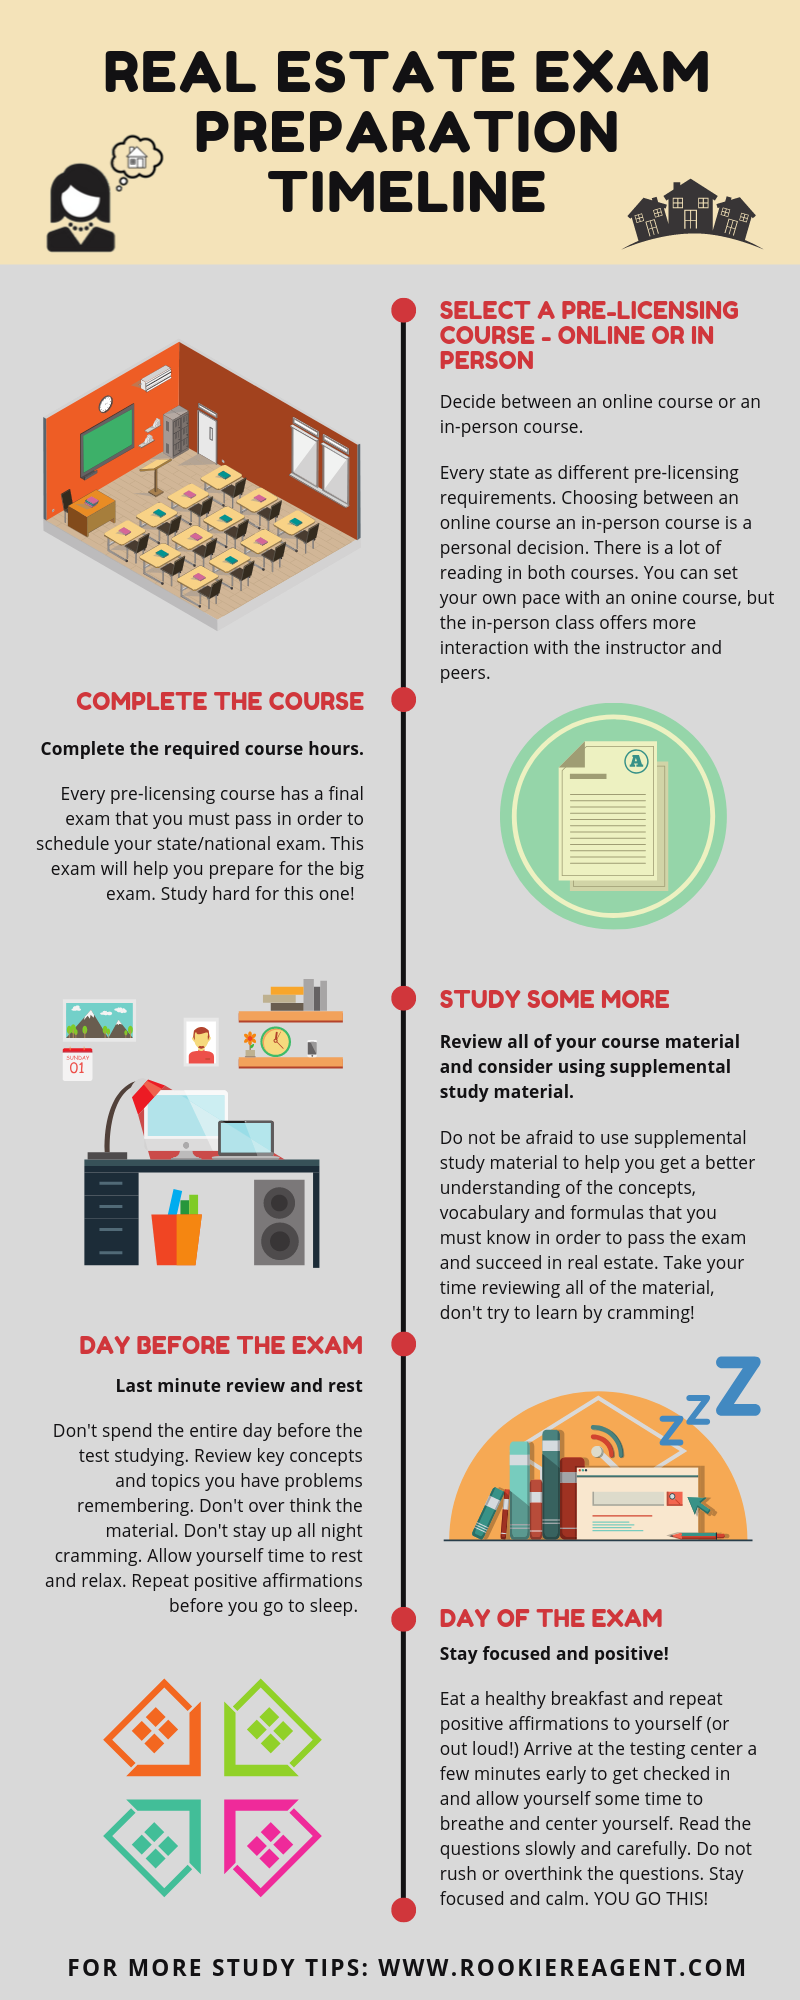 Real Estate Prep Timeline Real Estate Exam Study Tips Exam